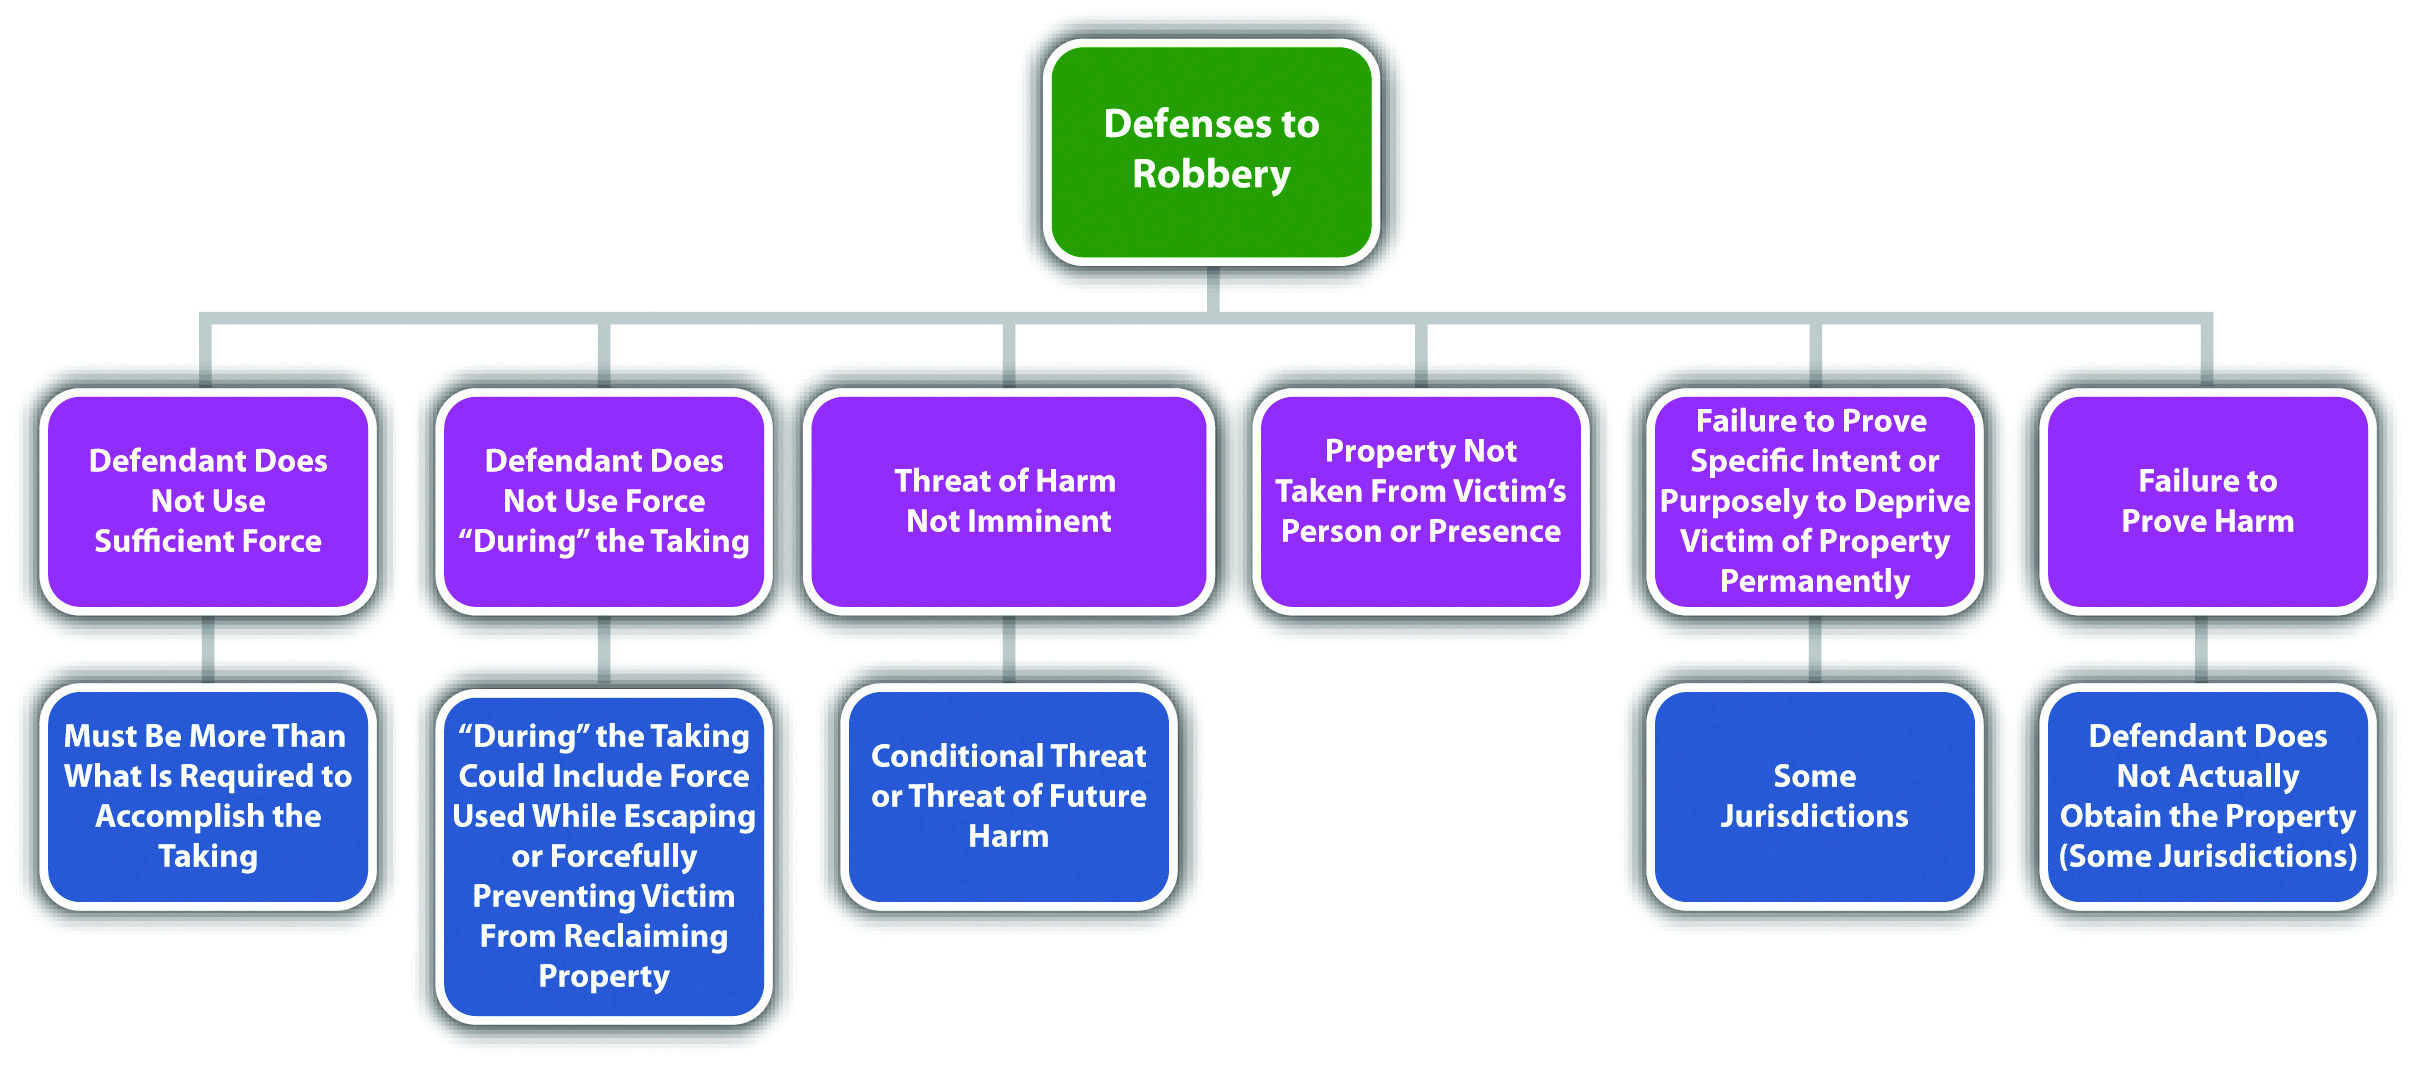 Diagram of Defenses to Robbery